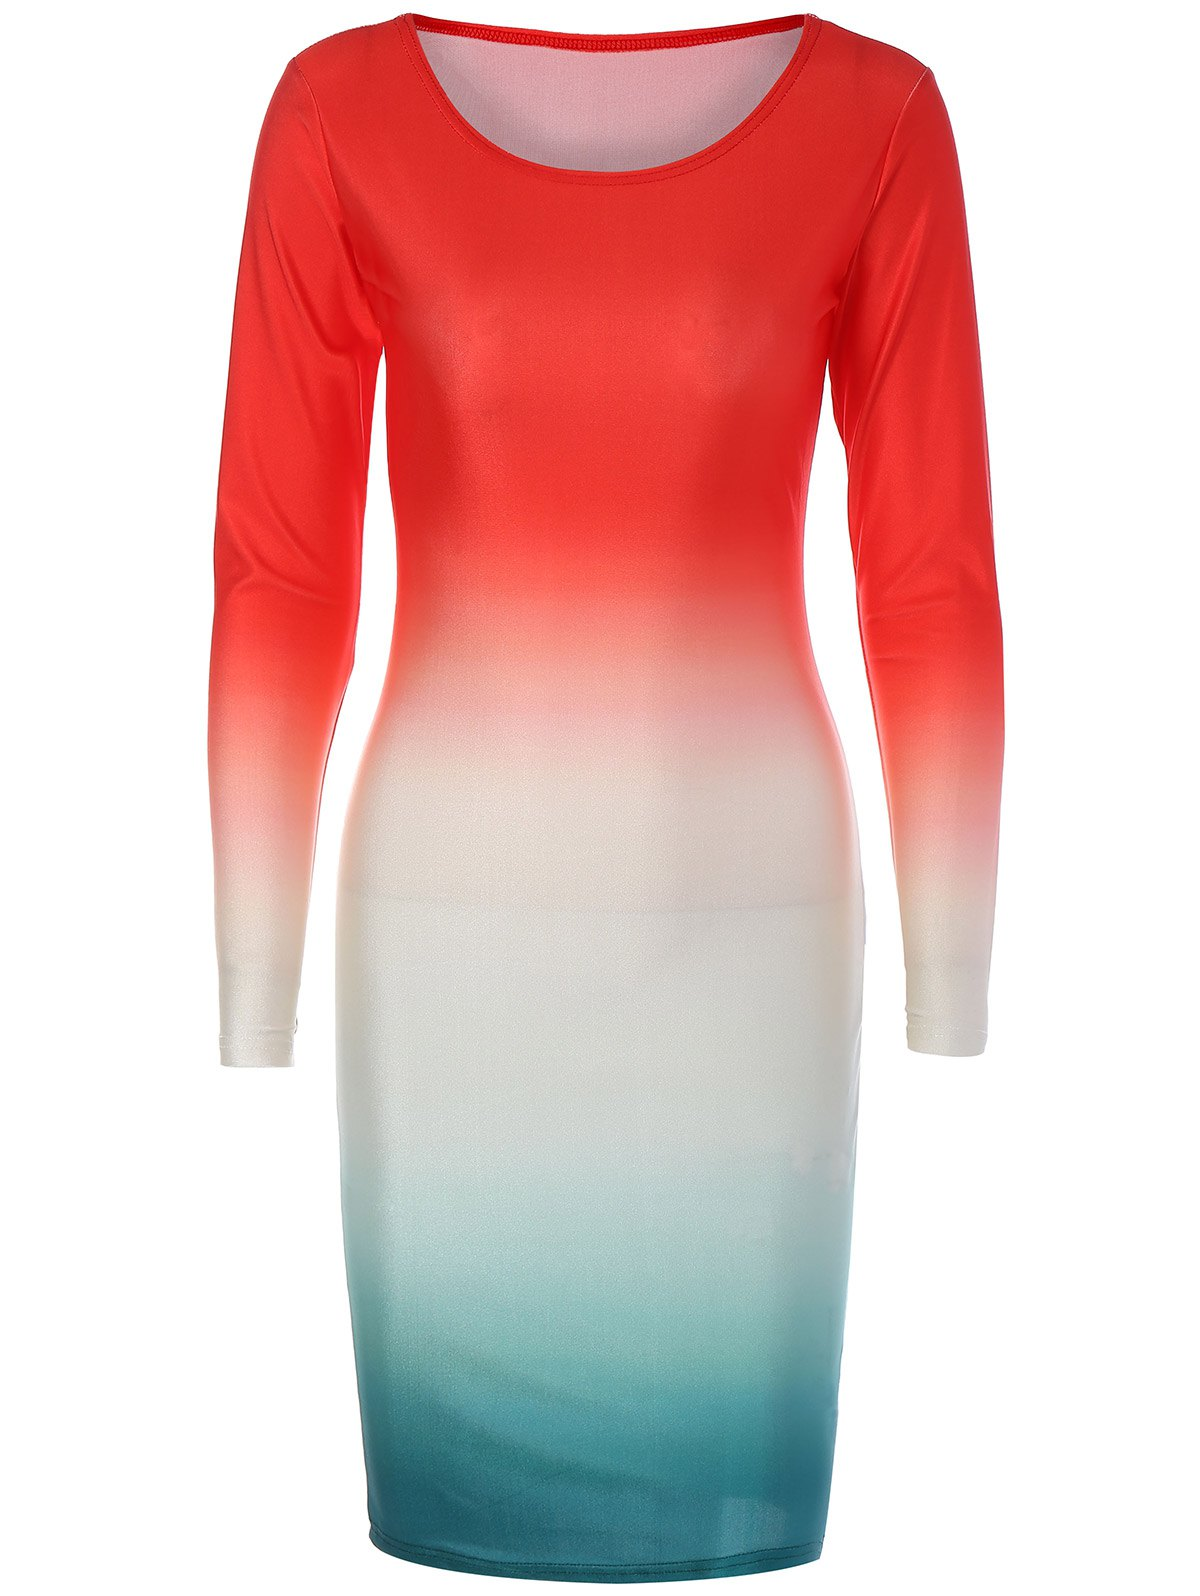 Long Sleeve Ombre Slimming Dress - RED S